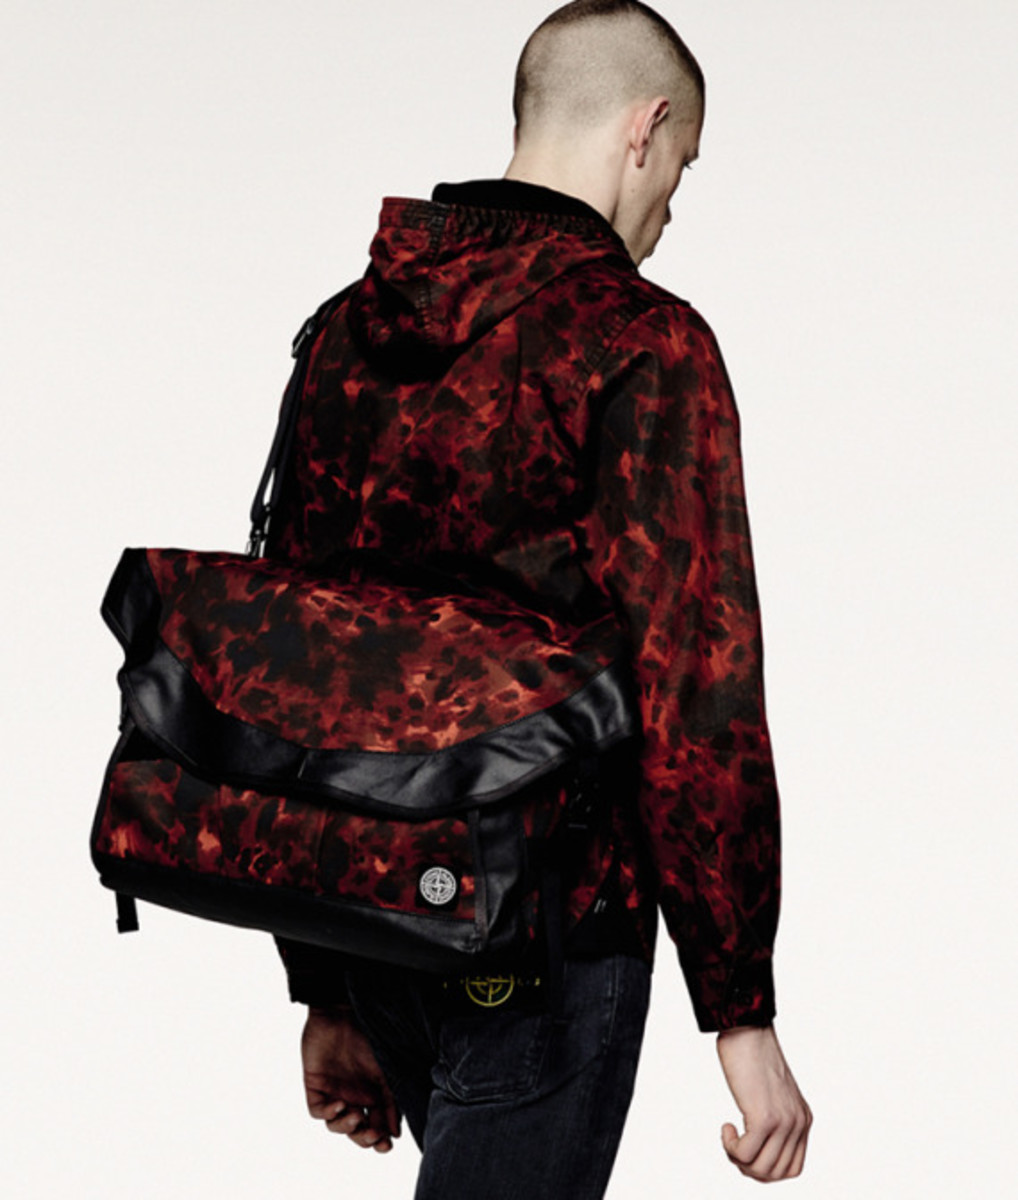 stone-island-fall-winter-2014-tortoise-camouflage-collection-05